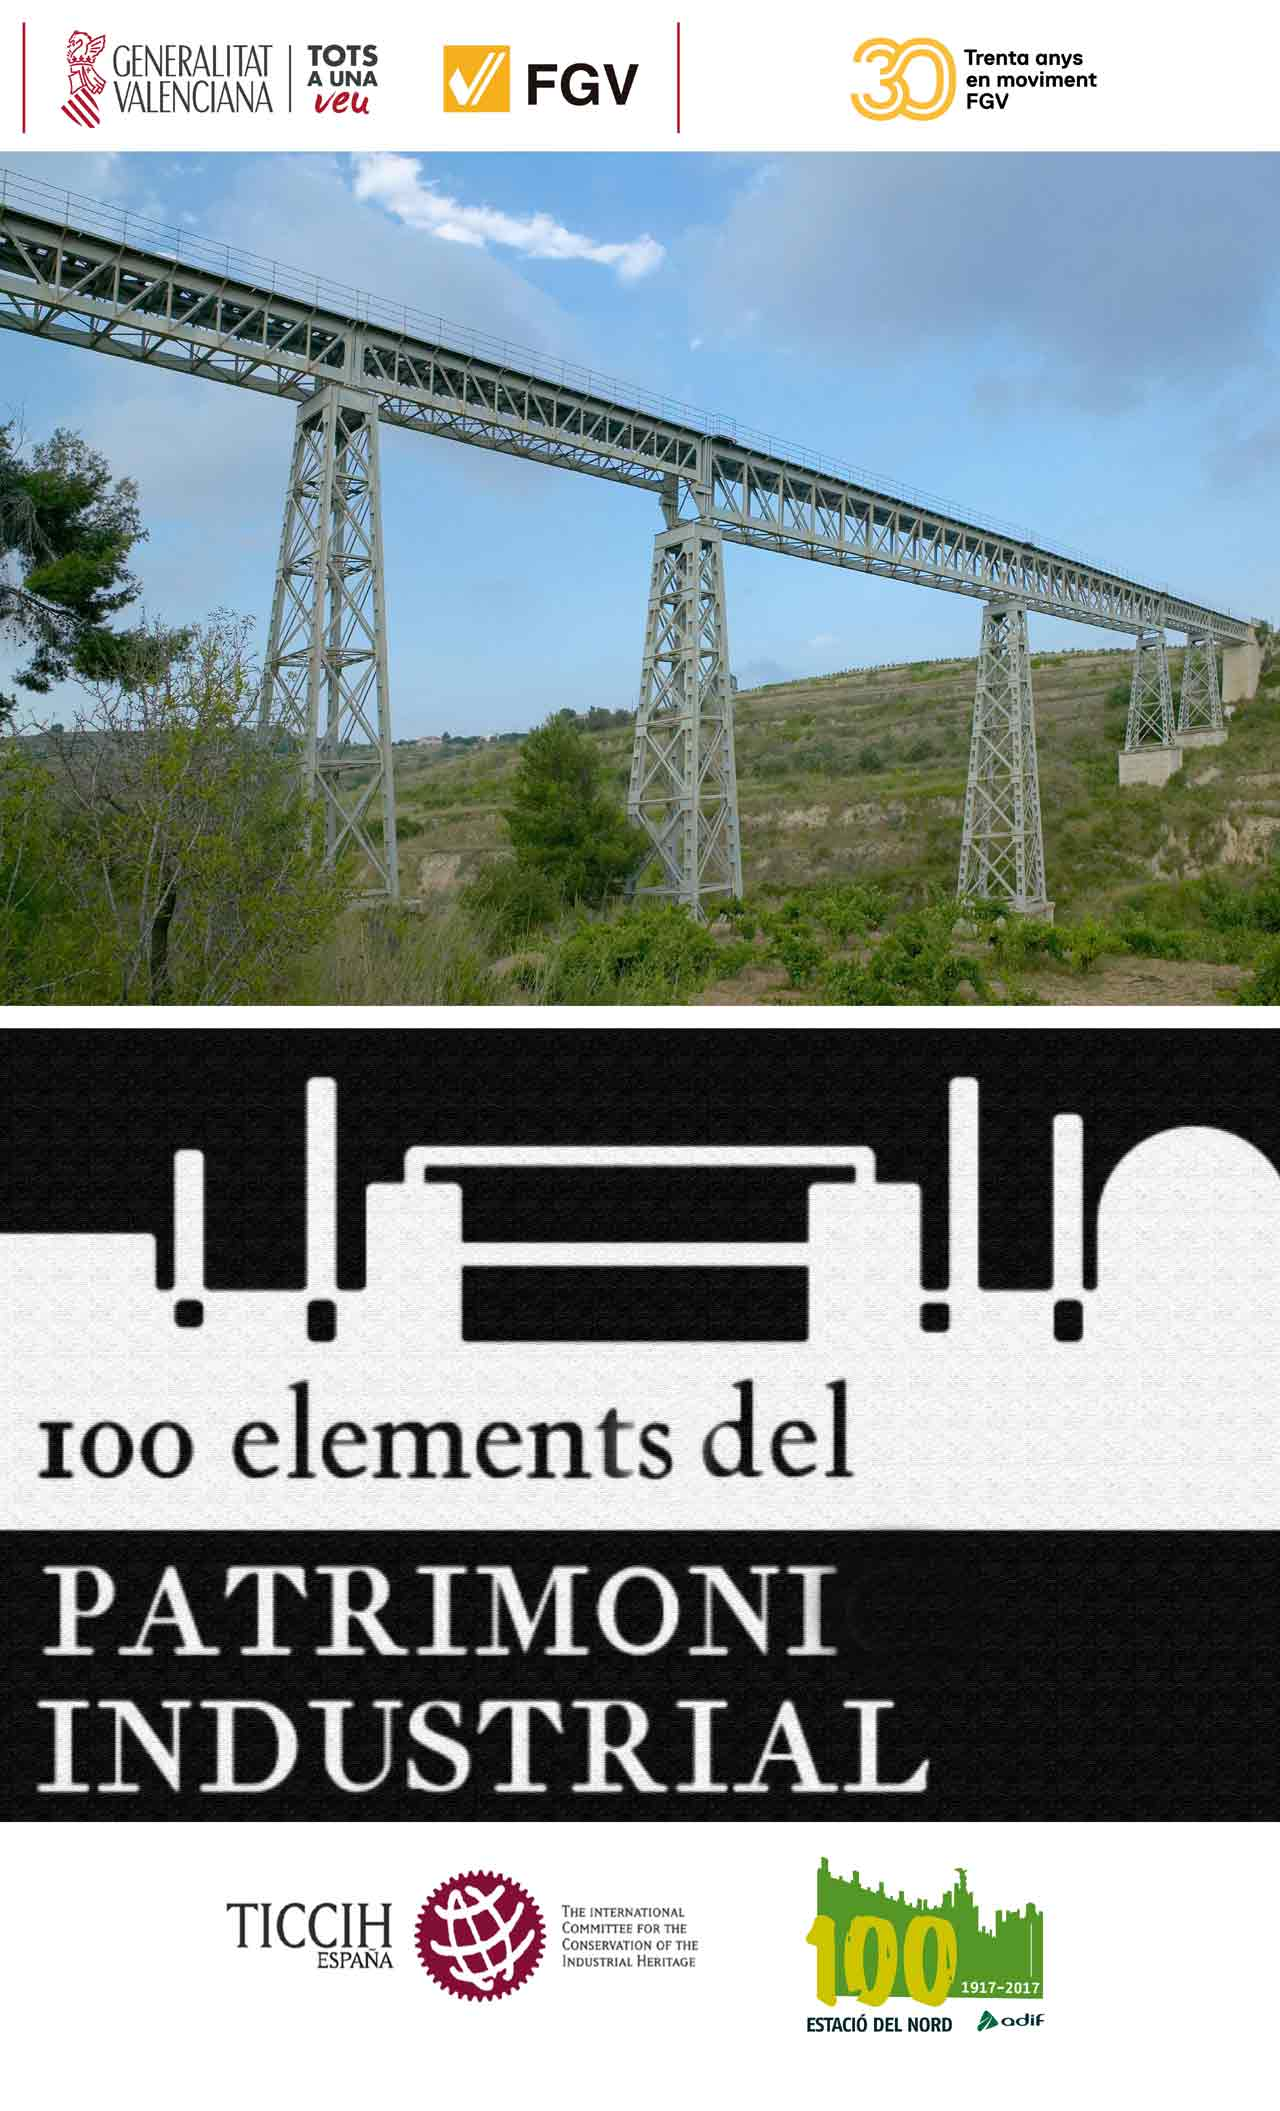 100 elements del Patrimoni Industrial